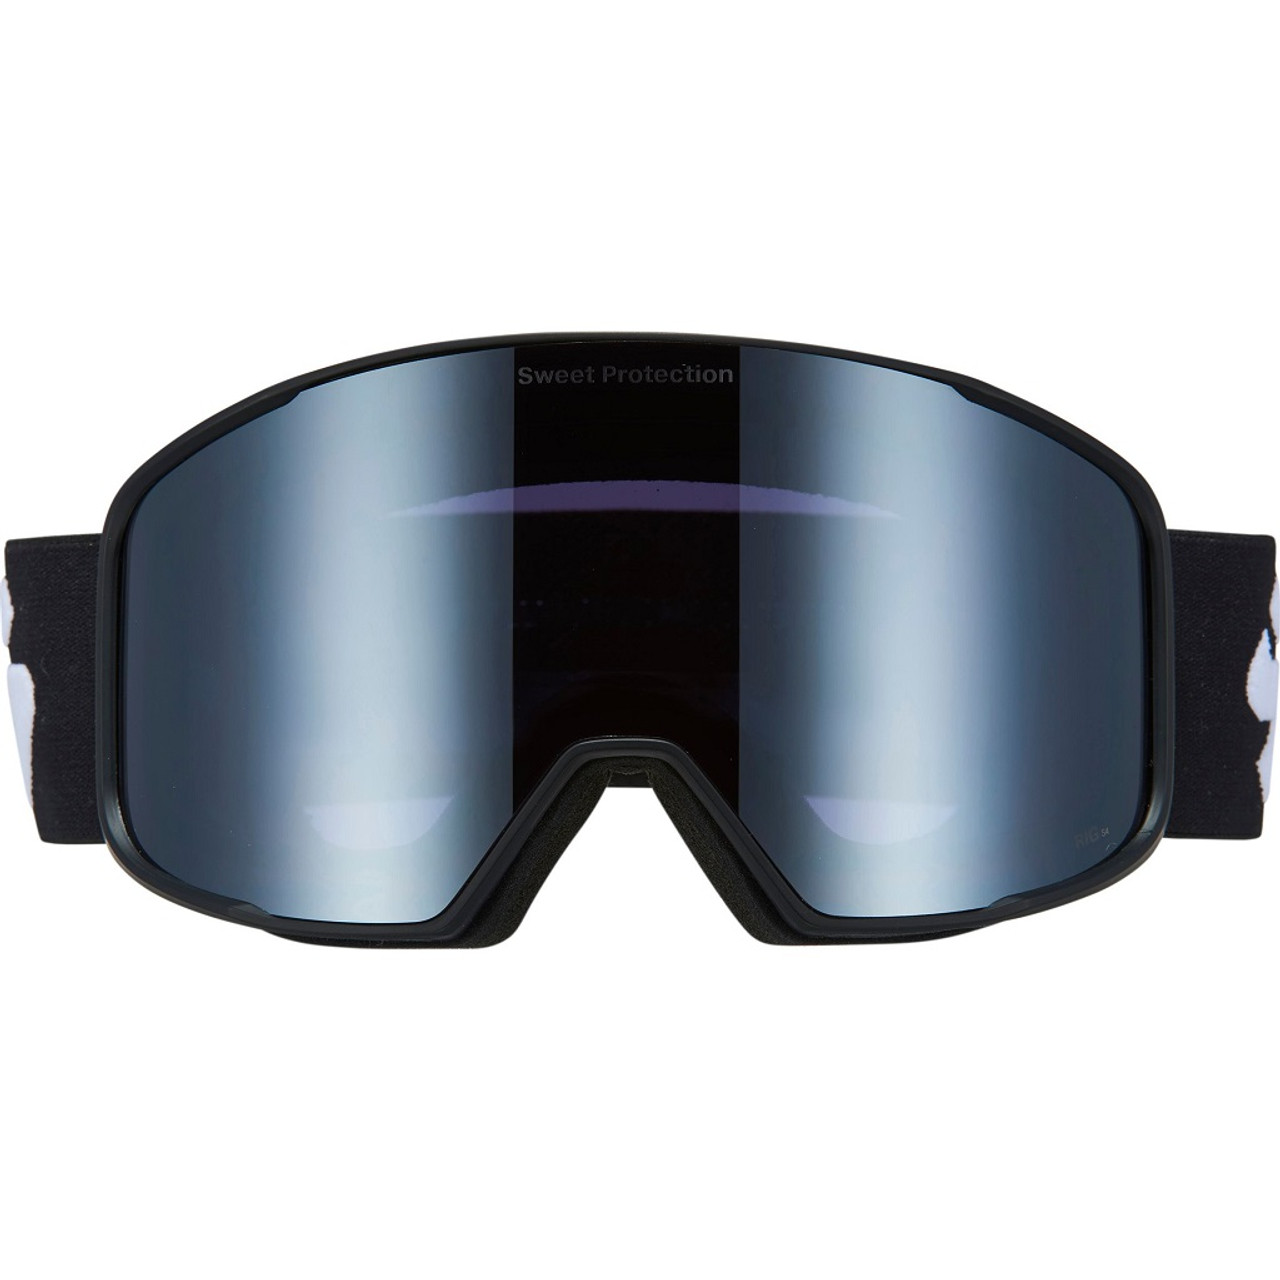 RIG Reflect Obsidian - Sweet Protection Boondock Lenses